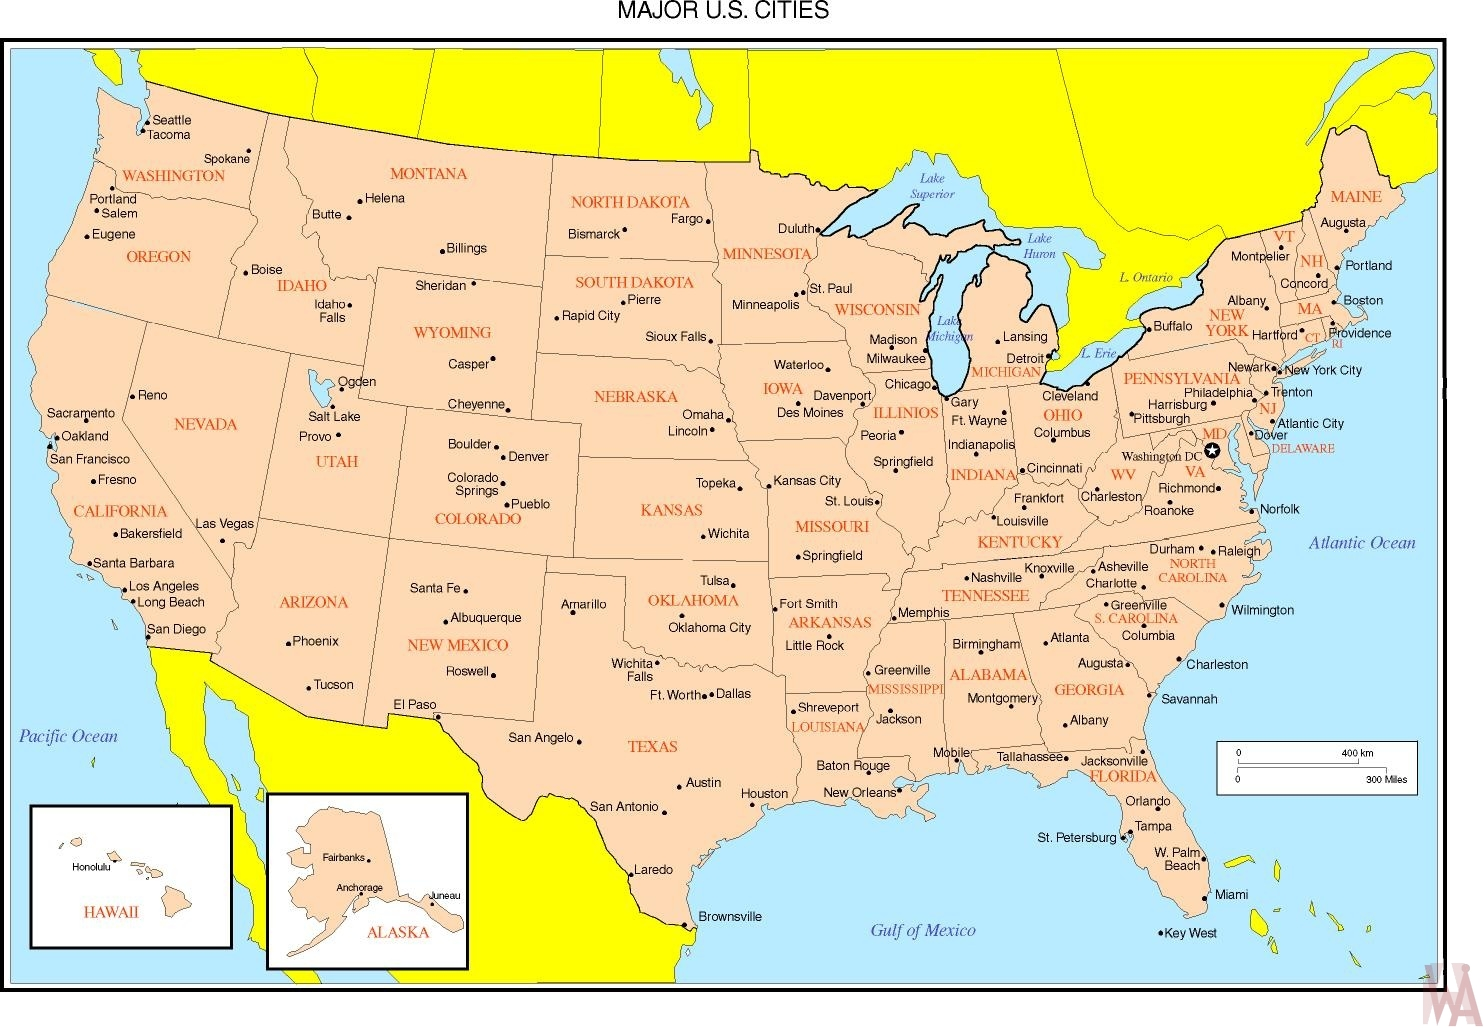 United States Political Map major cities | WhatsAnswer on great lakes map, map of the world, map of usa, full size us map, map of africa, africa map, the world map, mississippi map, map of north carolina, the us map, missouri map, map of europe, texas map, world map, florida map, canada map, map of florida, map of ohio, map of canada, map of south america, blank map, map of georgia, east coast map, europe map, map of us, us state map, mexico map, nevada map, tennessee map, map of california, map of america, map of the united states, arkansas map, 13 colonies map, caribbean map,